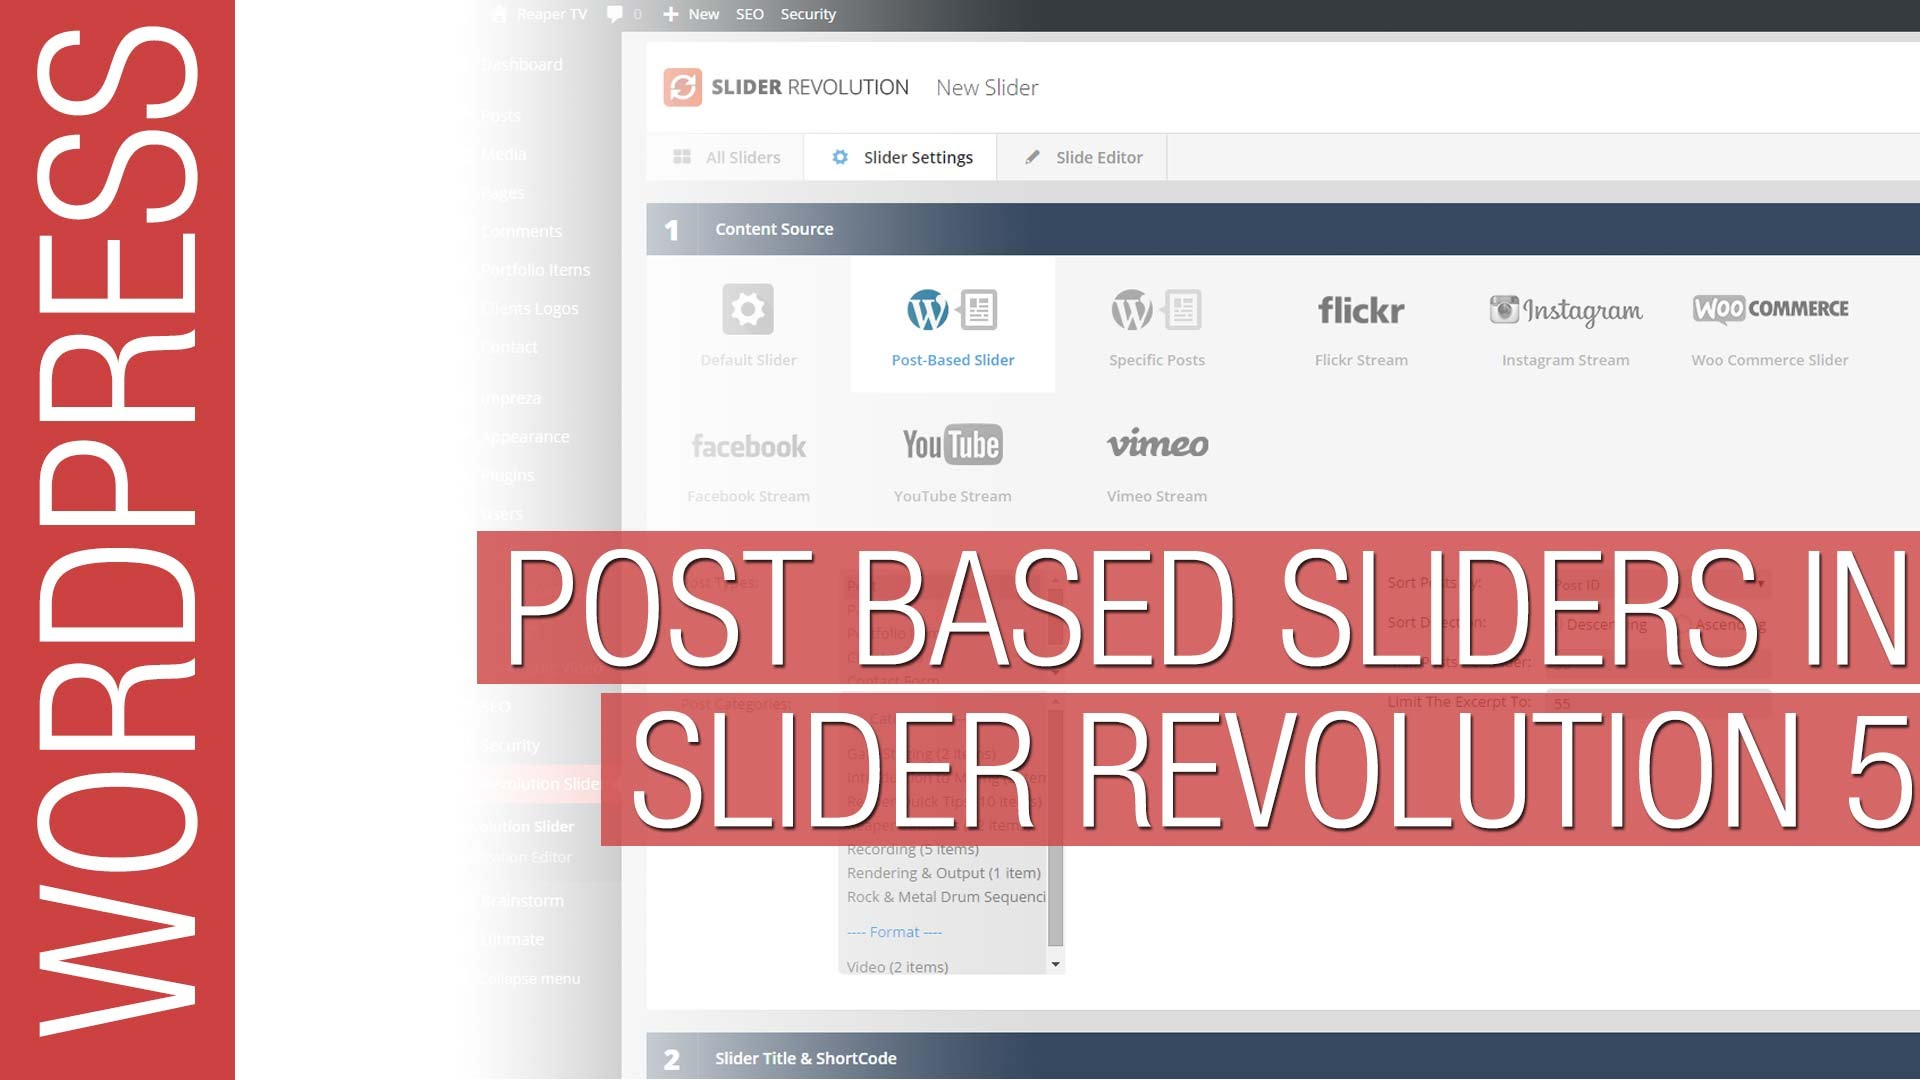 Slider Revolution 5 for WordPress – Post Based Sliders